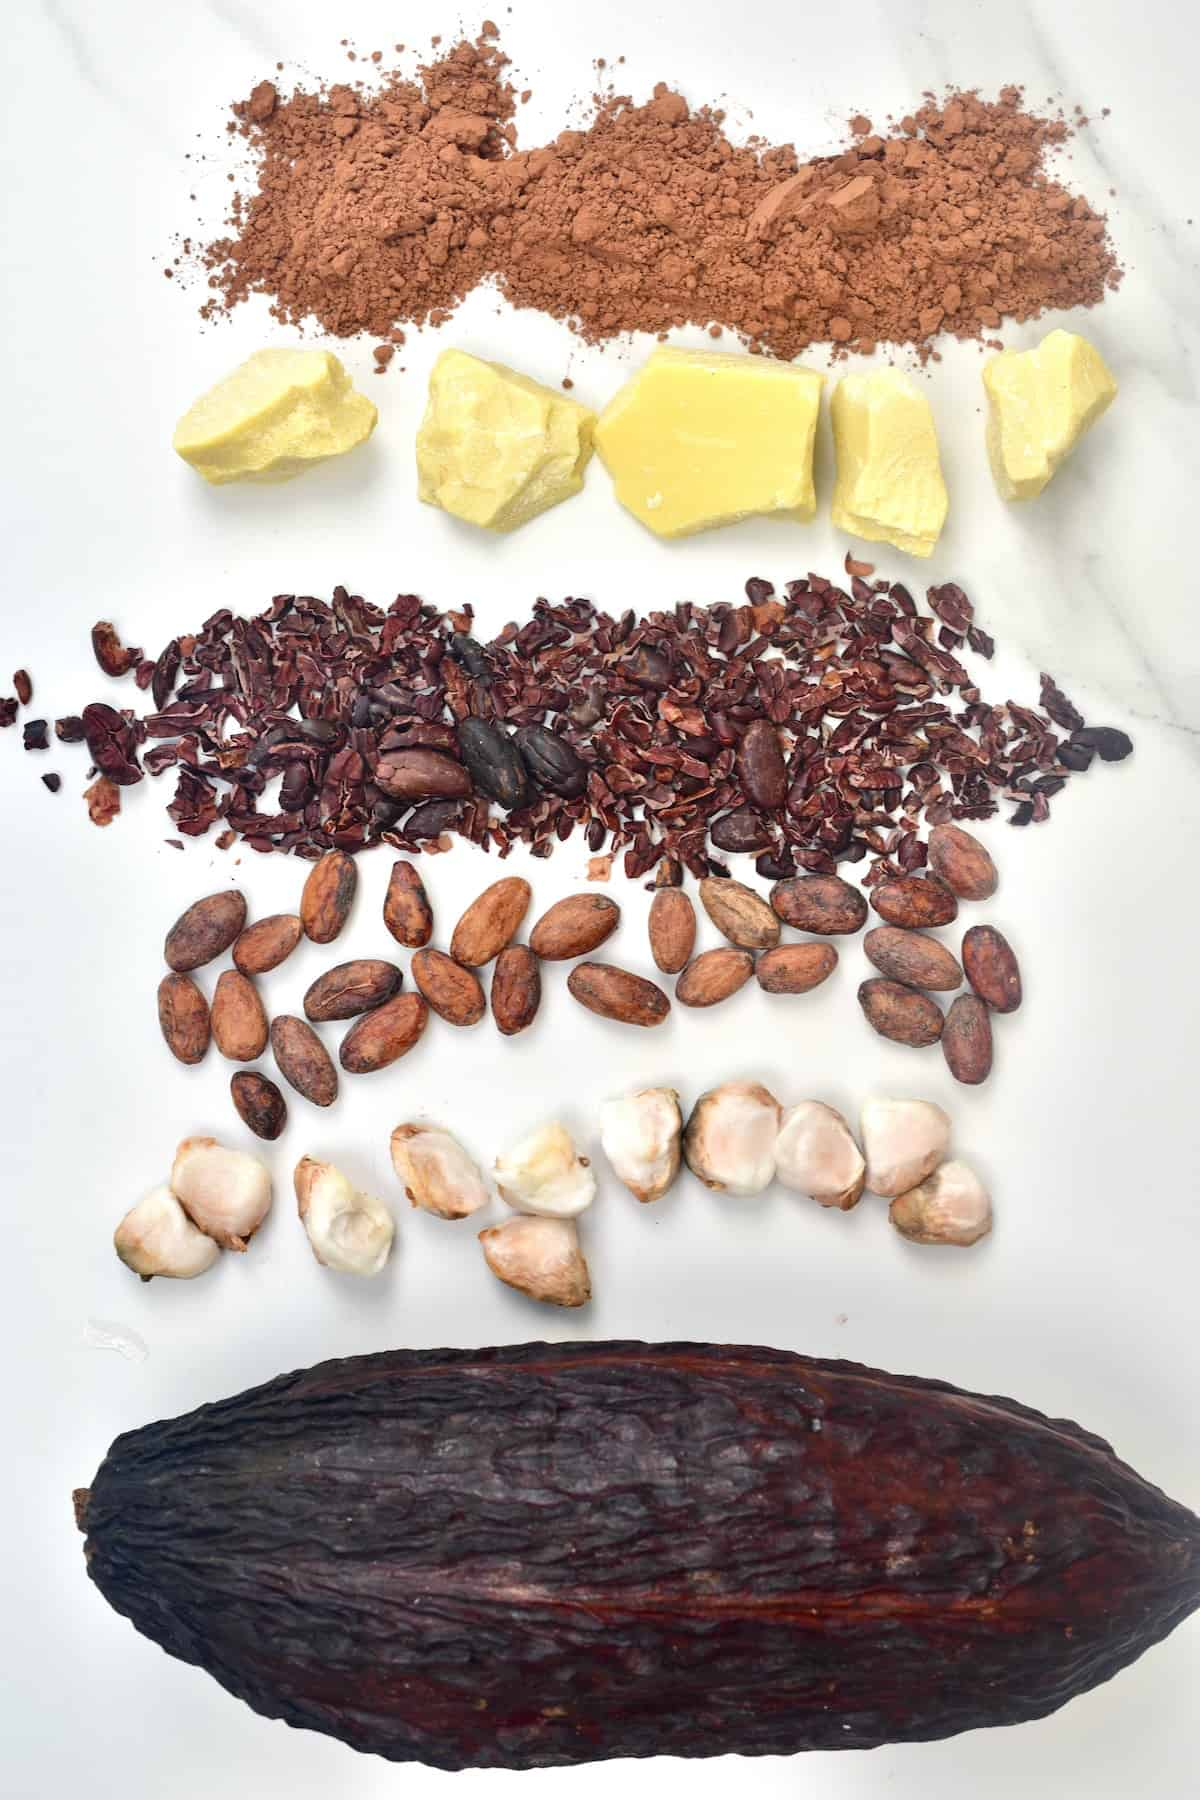 Products of the cacao bean